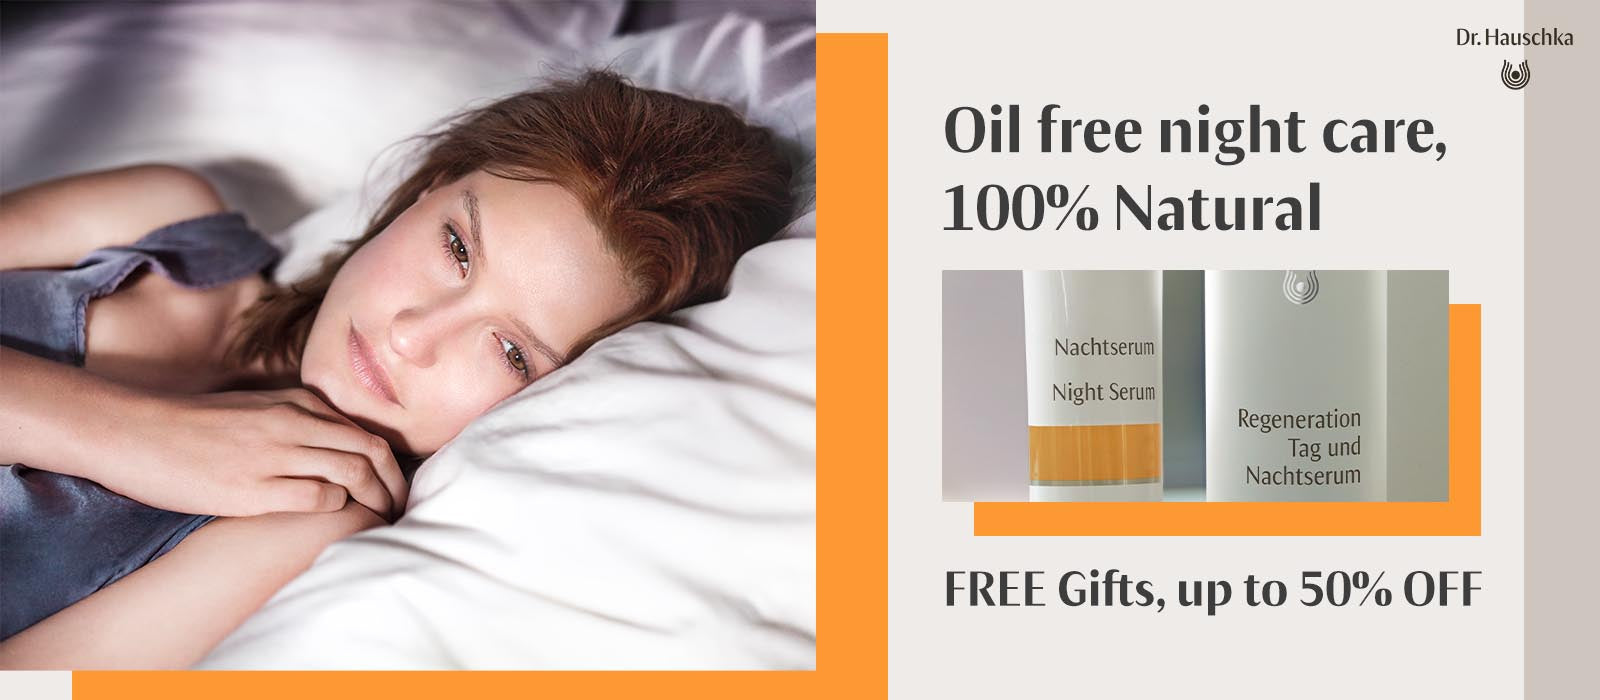 Dr Hauschka Oil Free night care discounts and free gifts